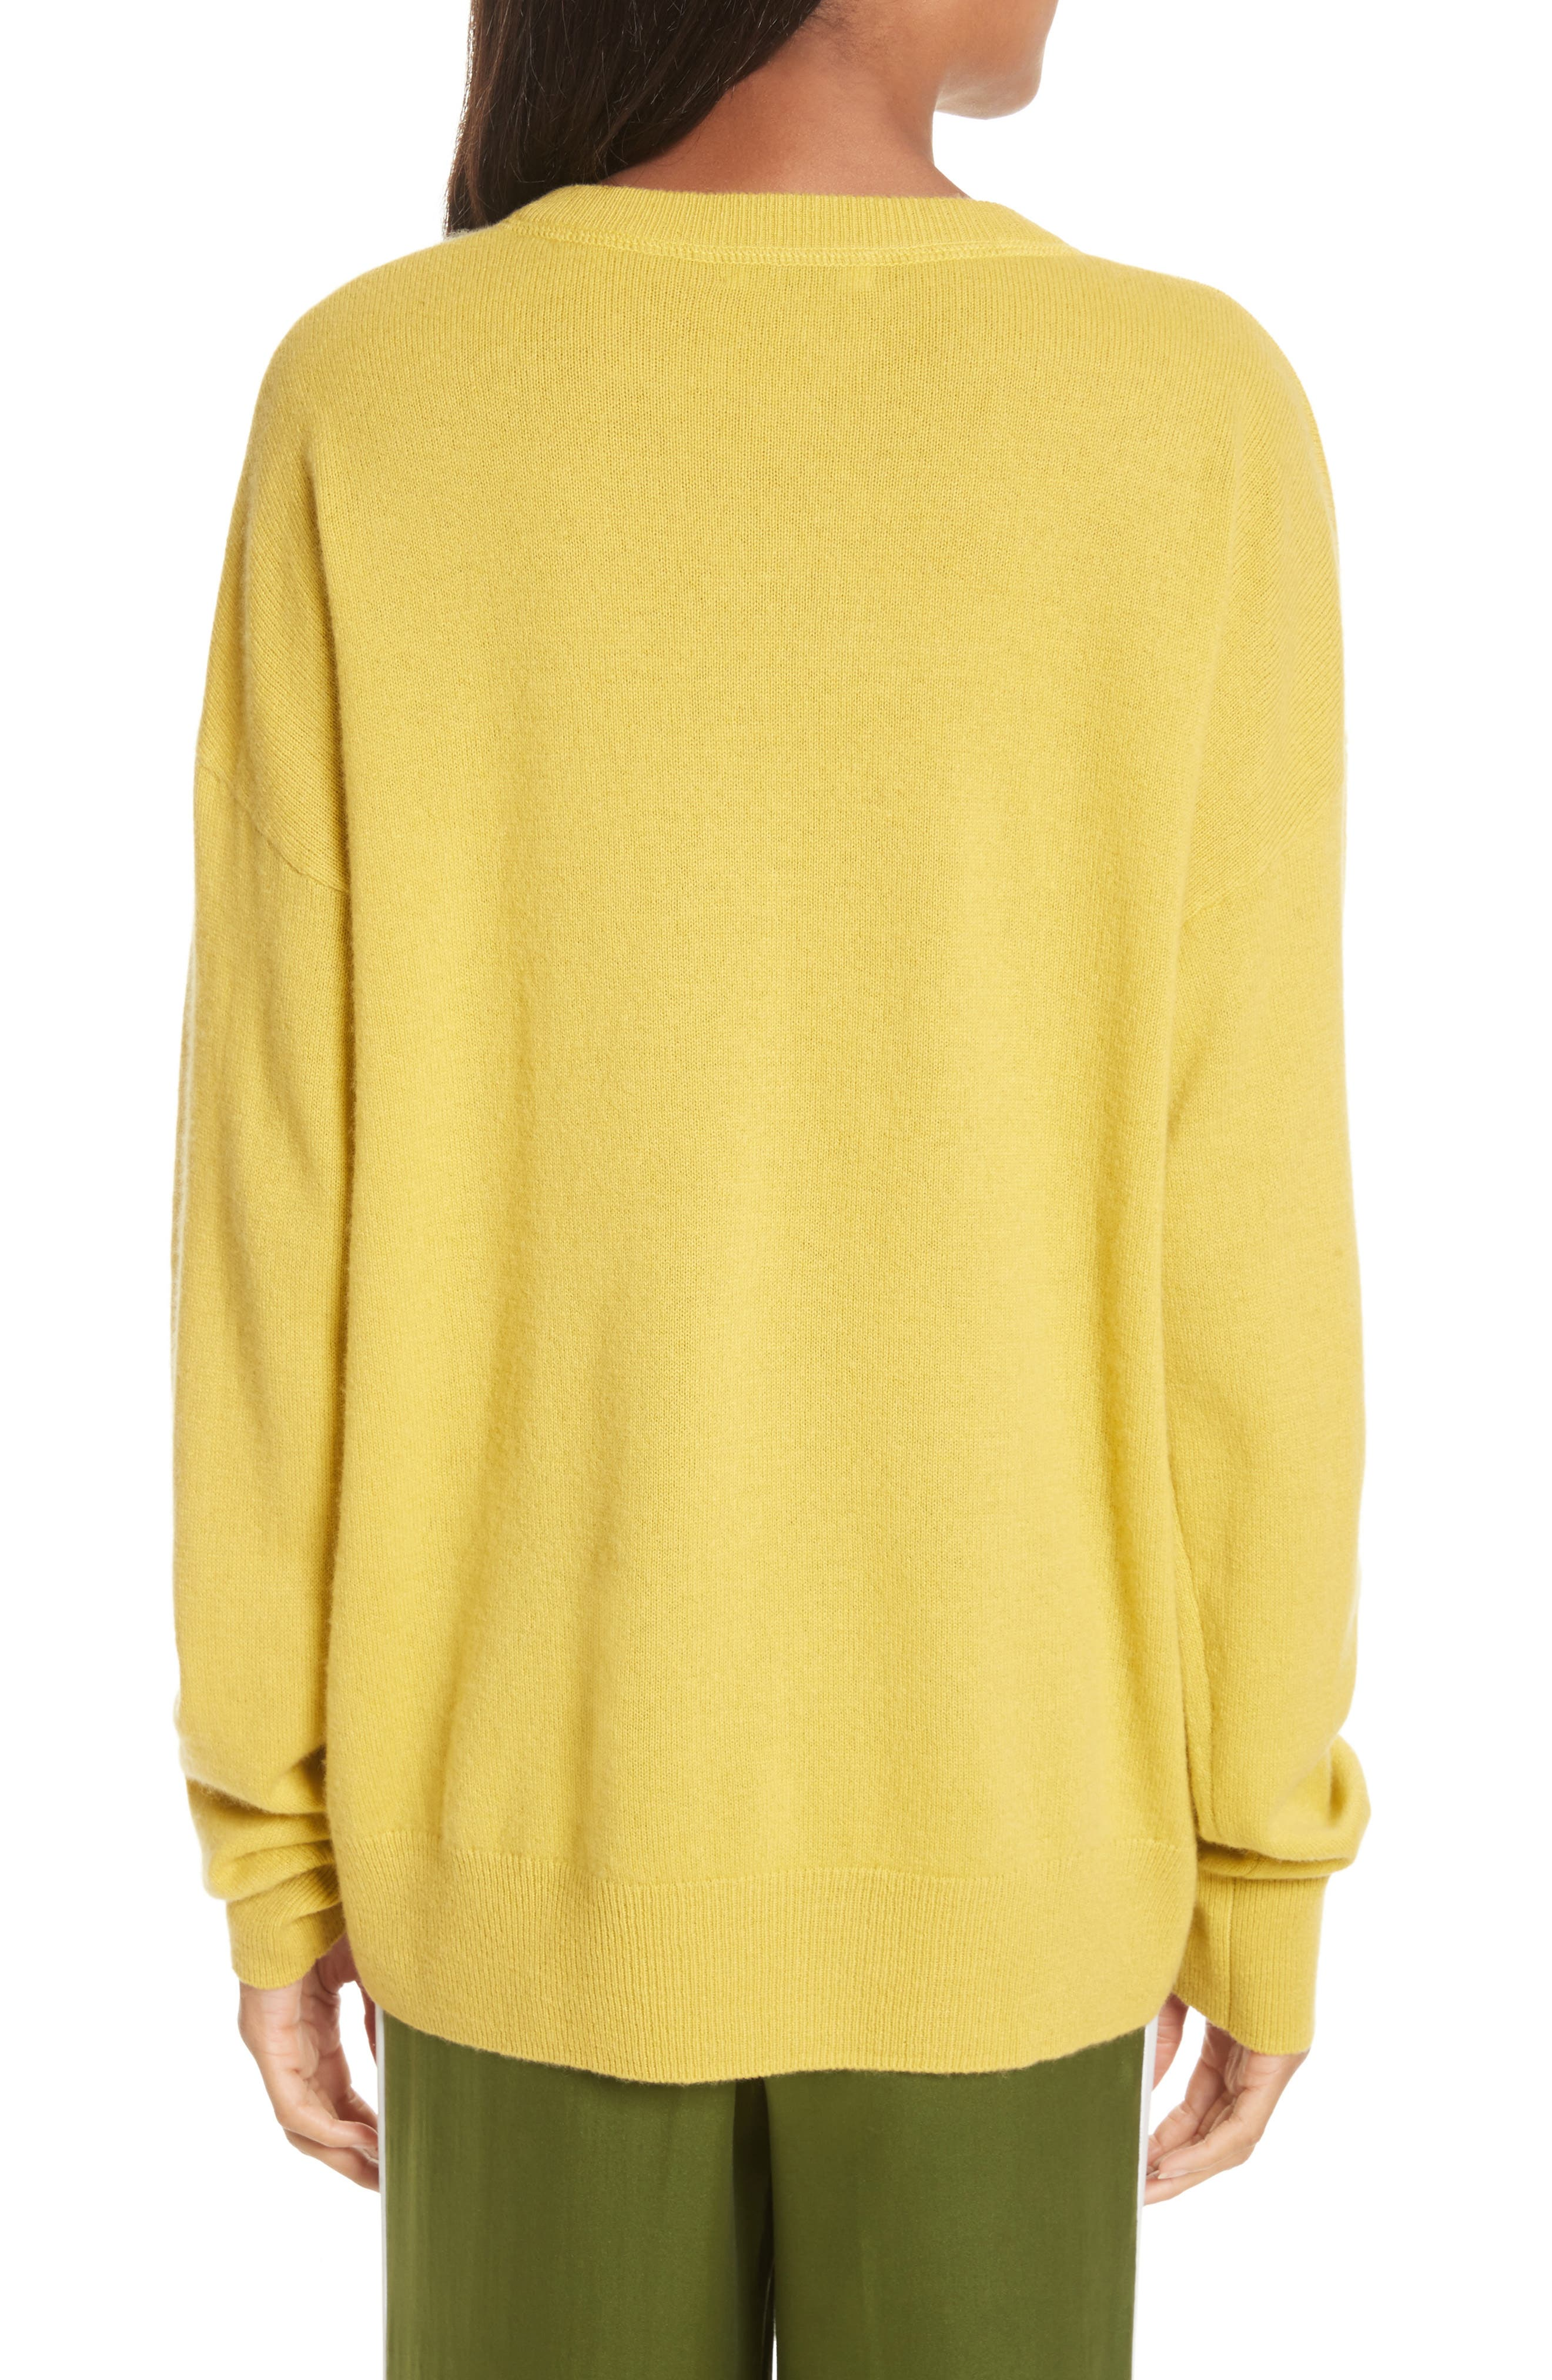 Renee Cashmere Sweatshirt,                             Alternate thumbnail 2, color,                             Bright Side